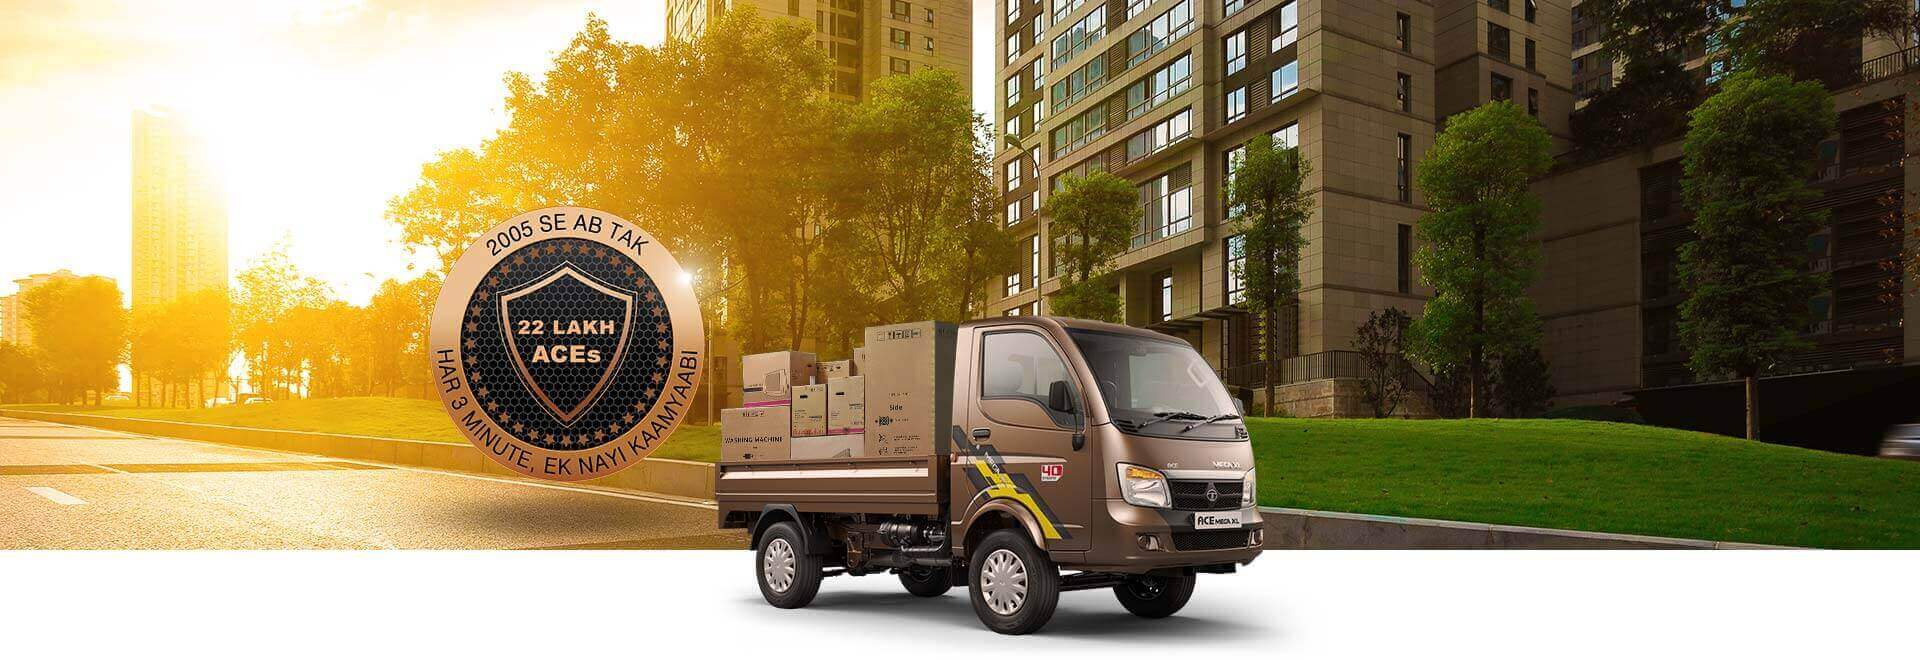 Tata Ace Gold Small Commercial Truck